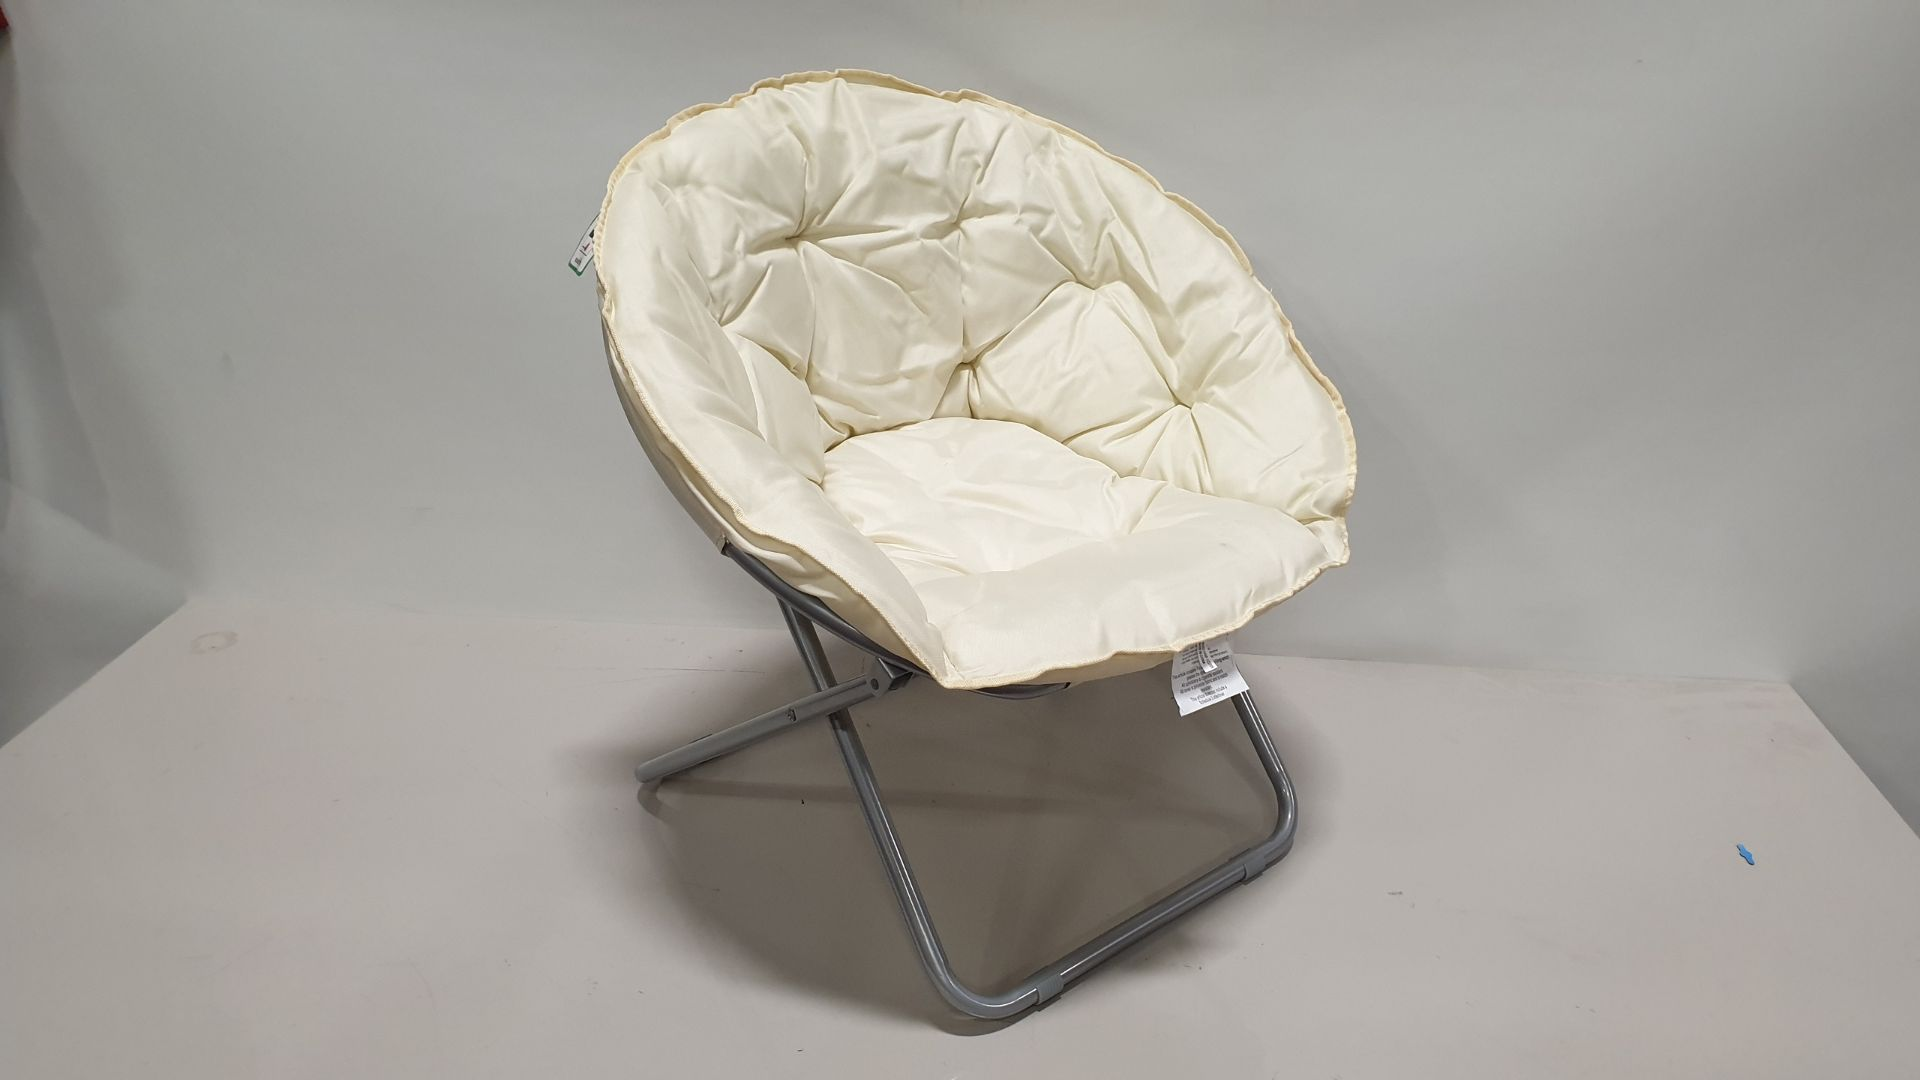 8 X BRAND NEW CREAM BUCKET CHAIR - IN 2 BOXES